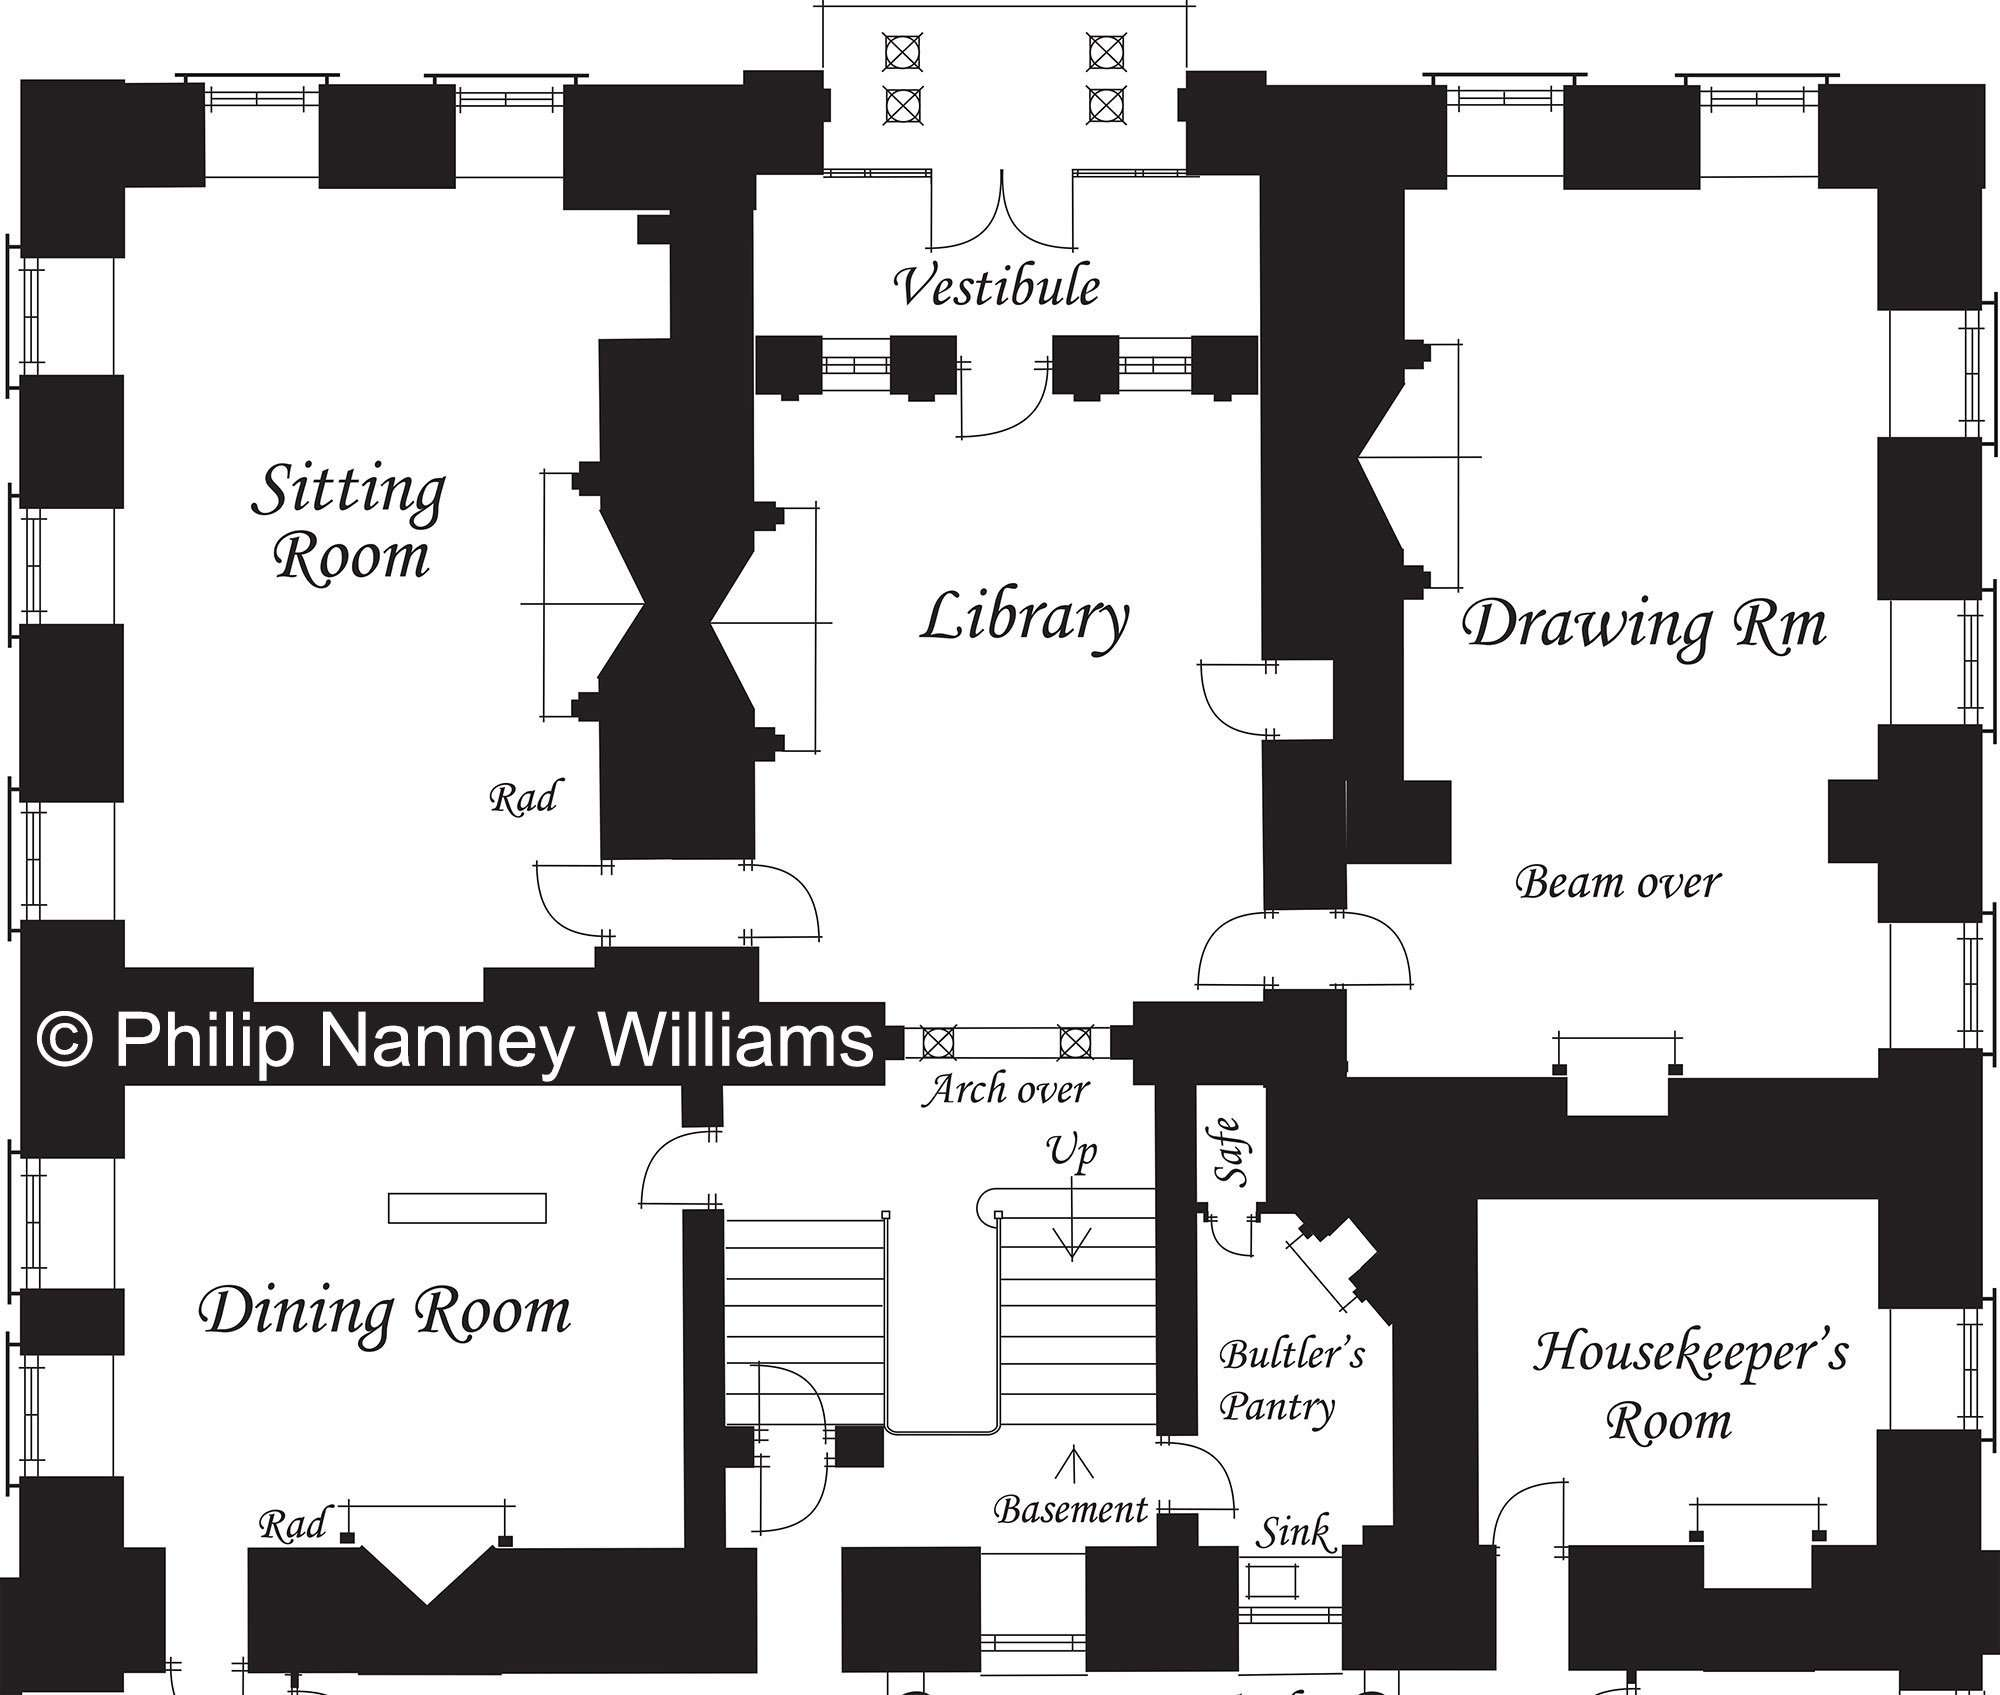 Ground Floor (without the Pavilion Wings) - © Philip Nanney Williams